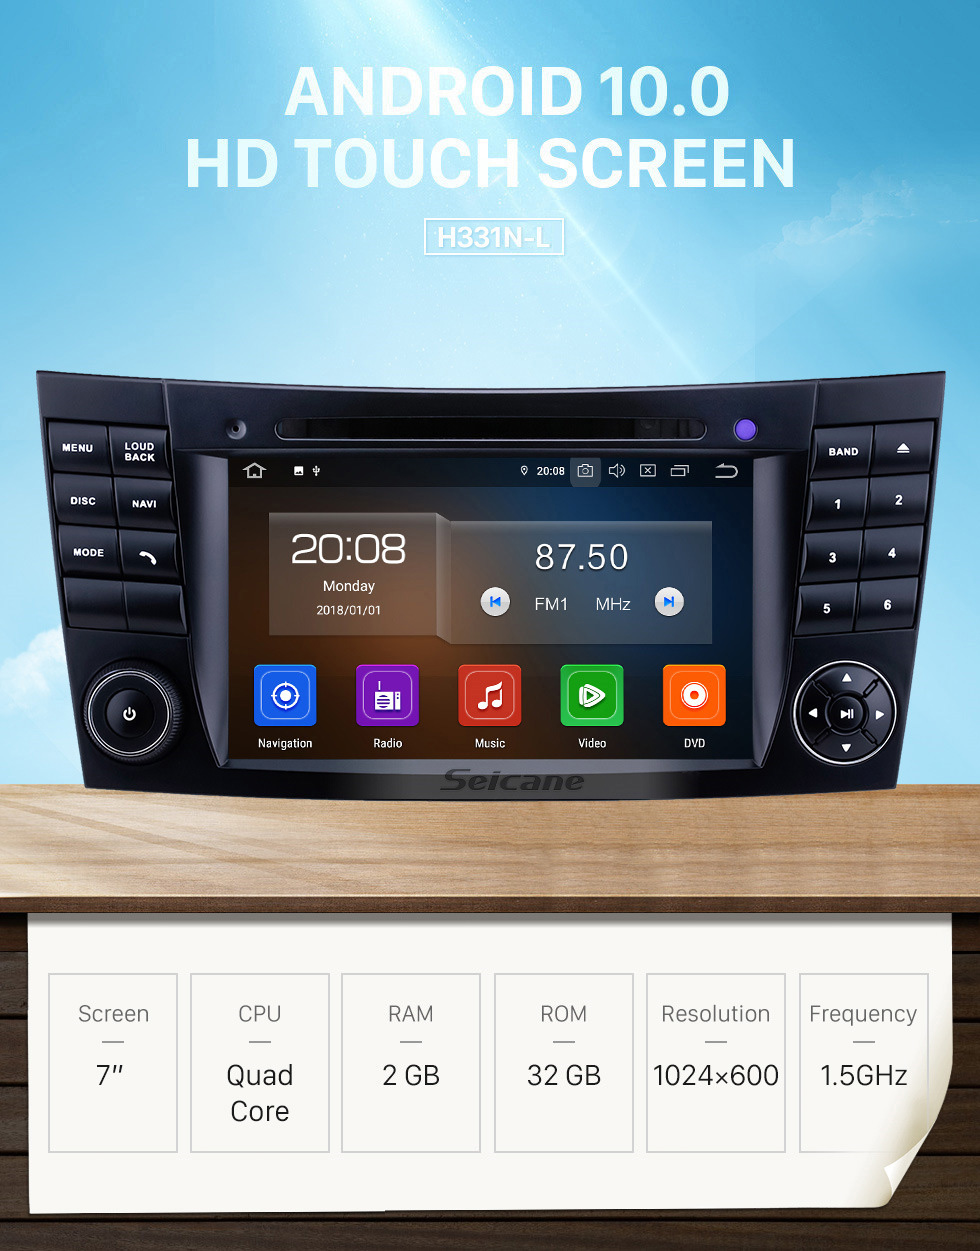 Seicane 7 inch Mercedes Benz CLK W209 HD Touchscreen Android 10.0 GPS Navigation Radio Bluetooth Carplay USB Music AUX support TPMS DAB+ Mirror Link